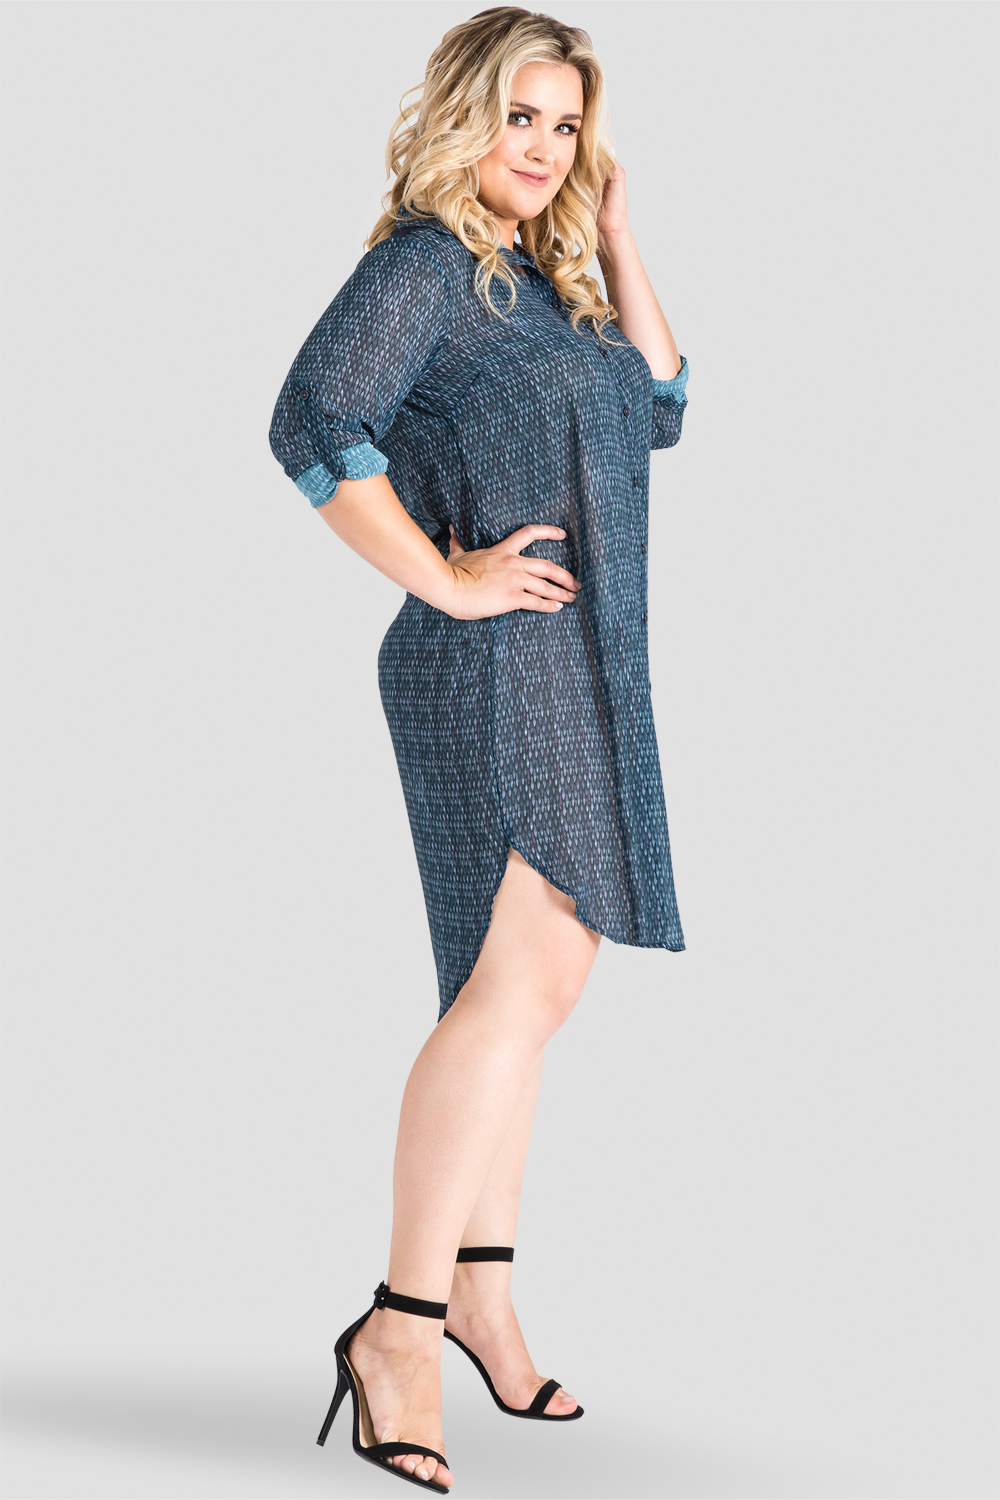 2e22bb75e205 Plus Size Standards & Practices Gray Snakeskin Print Chiffon Shirtdress  with Sheer Back. now. 1/6